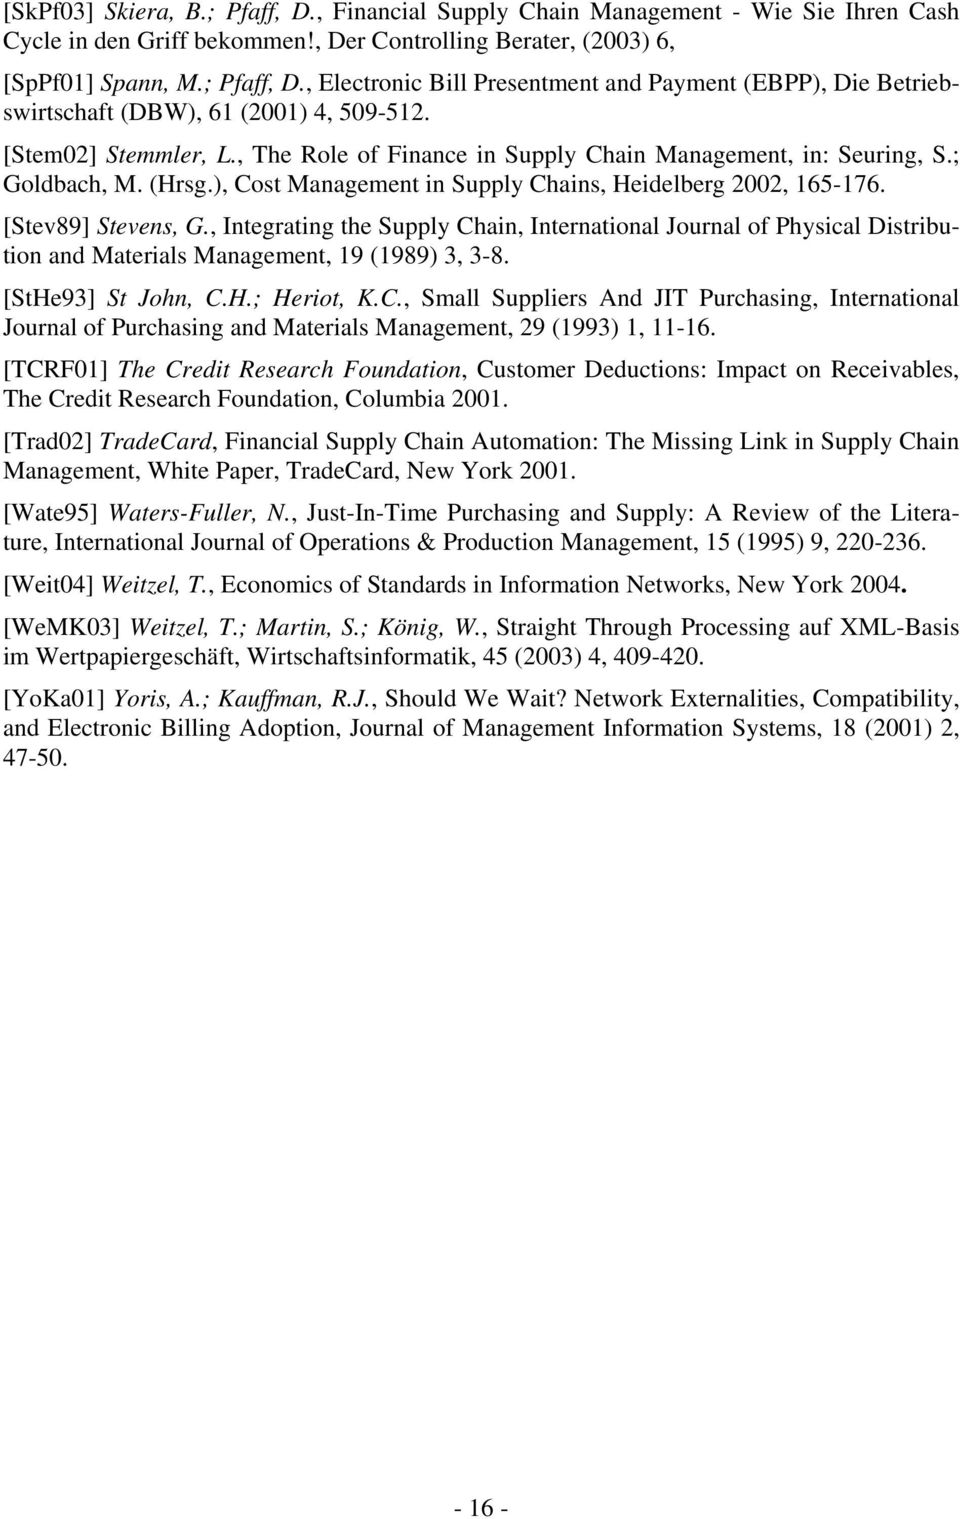 , Integrating the Supply Chain, International Journal of Physical Distribution and Materials Management, 19 (1989) 3, 3-8. [StHe93] St John, C.H.; Heriot, K.C., Small Suppliers And JIT Purchasing, International Journal of Purchasing and Materials Management, 29 (1993) 1, 11-16.